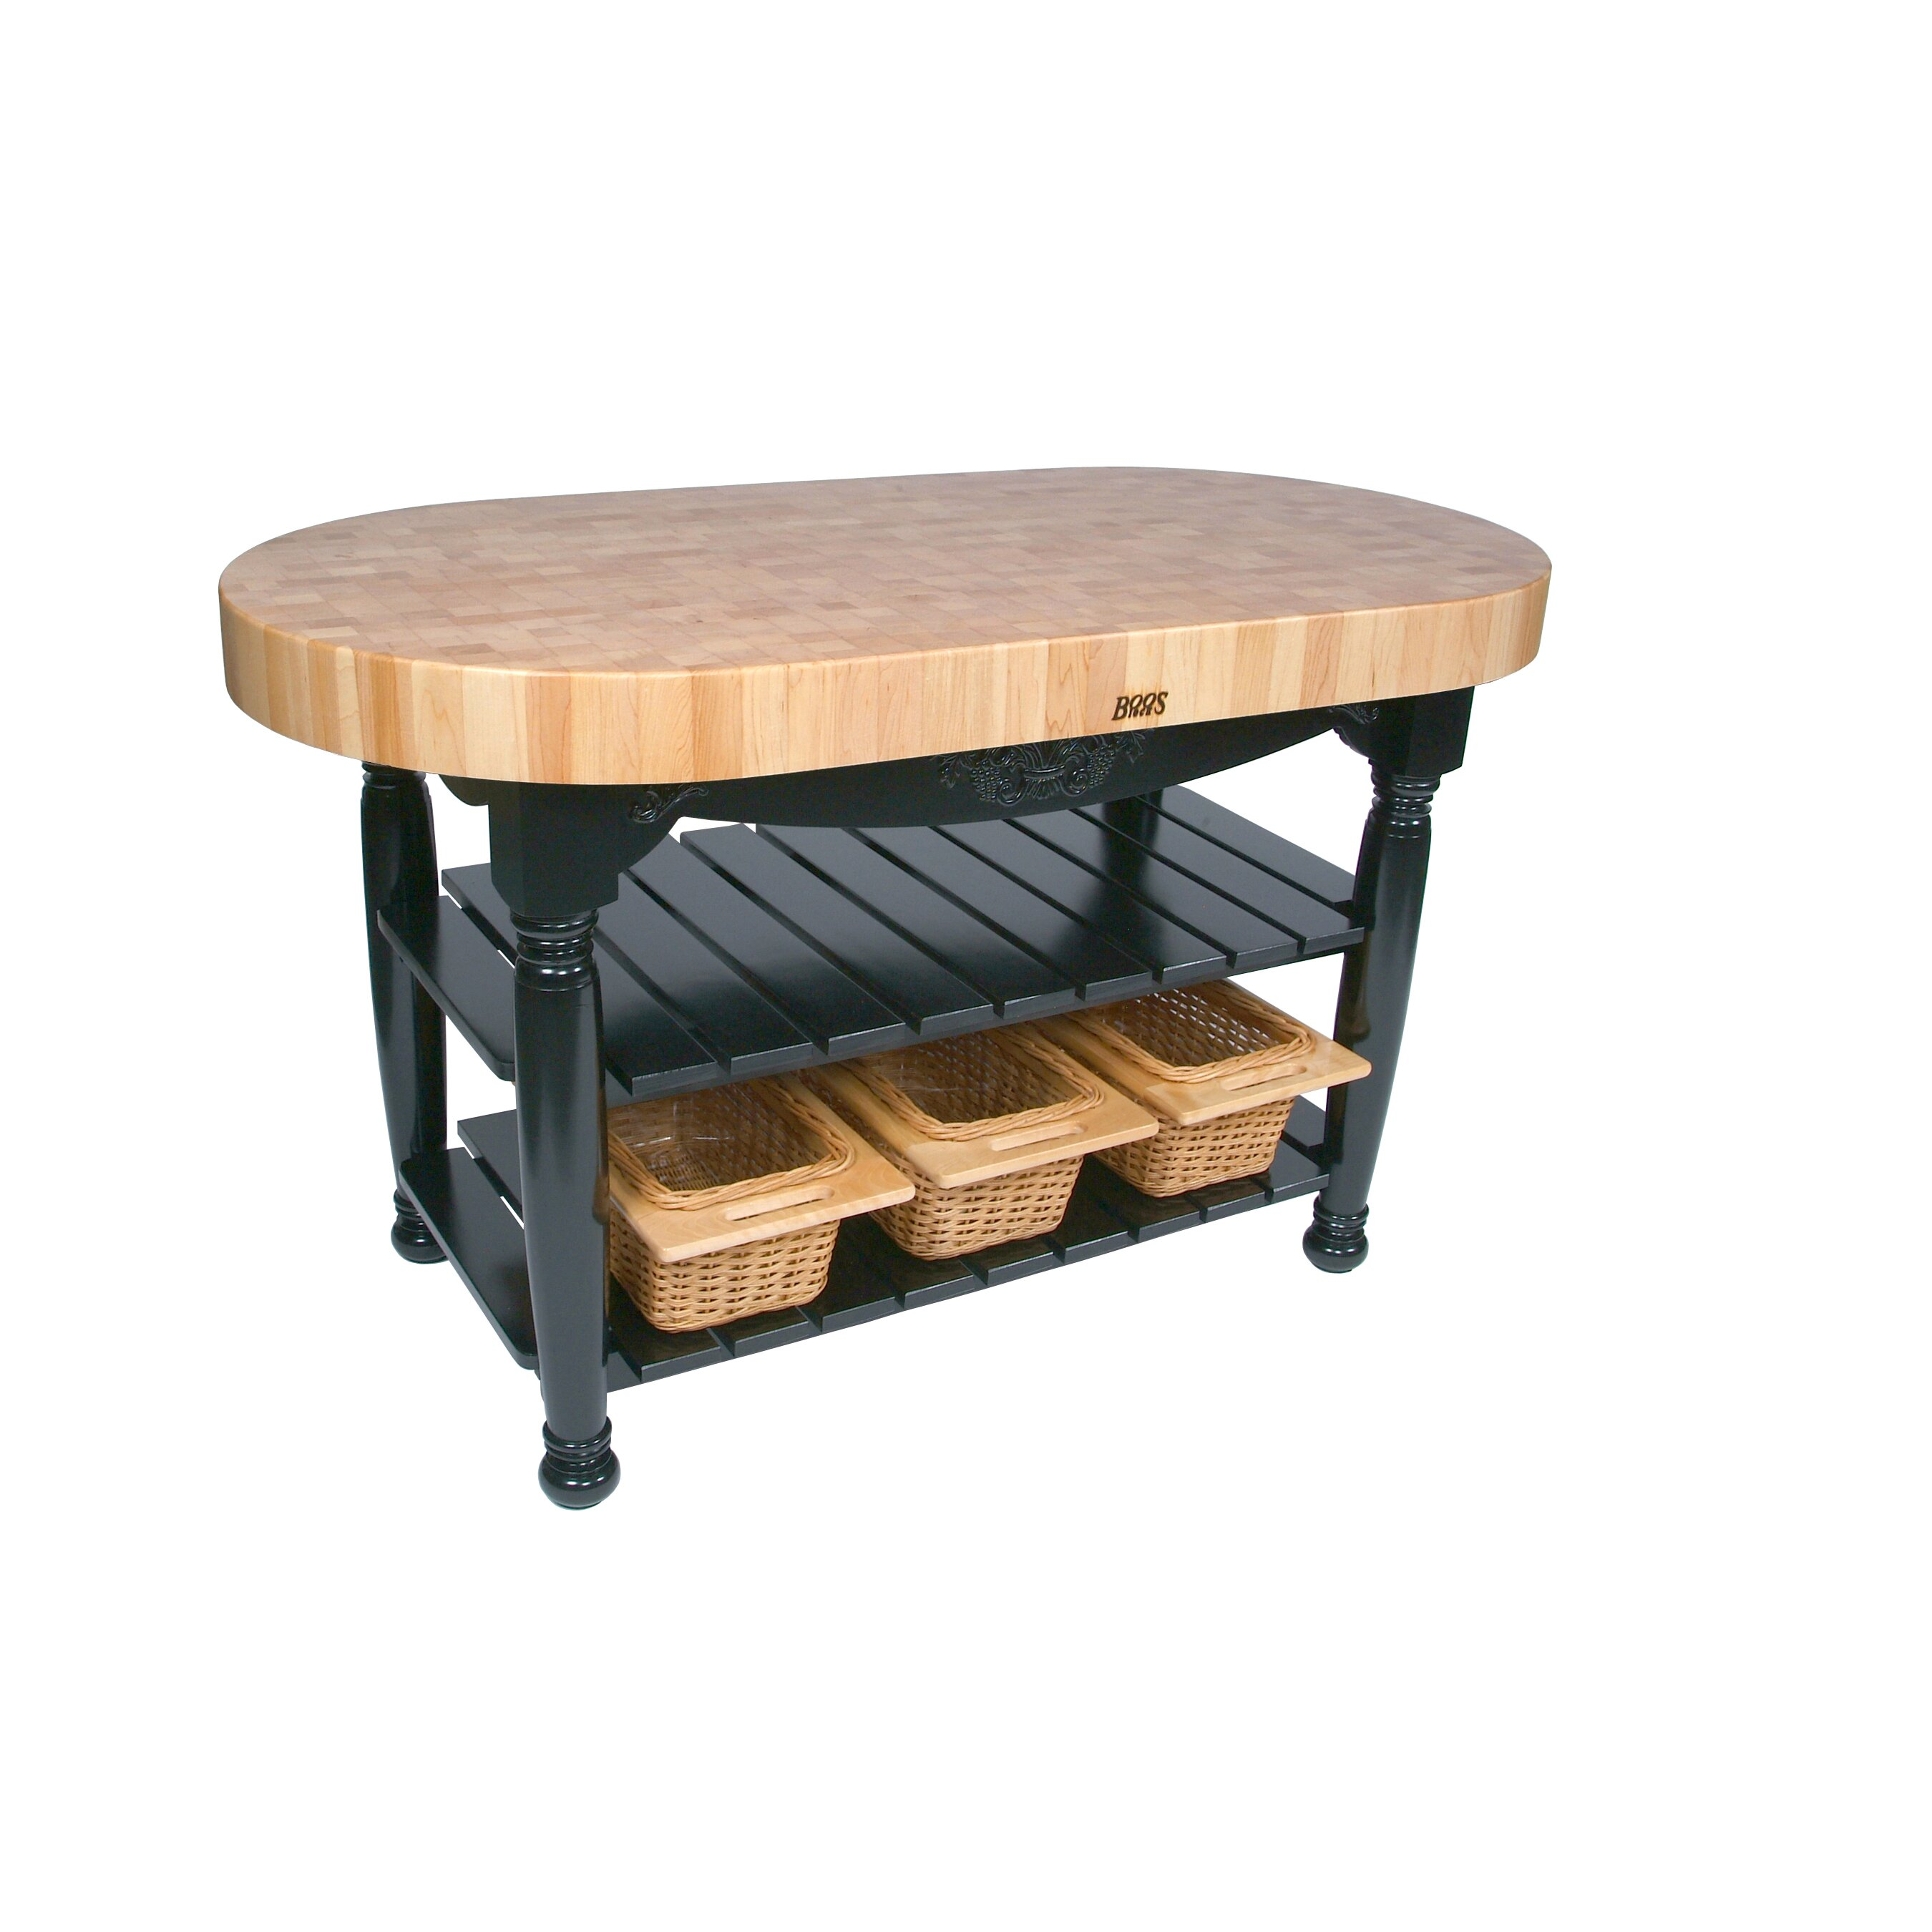 Kitchen Island With Butcher Block Top: John Boos American Heritage Prep Table With Butcher Block